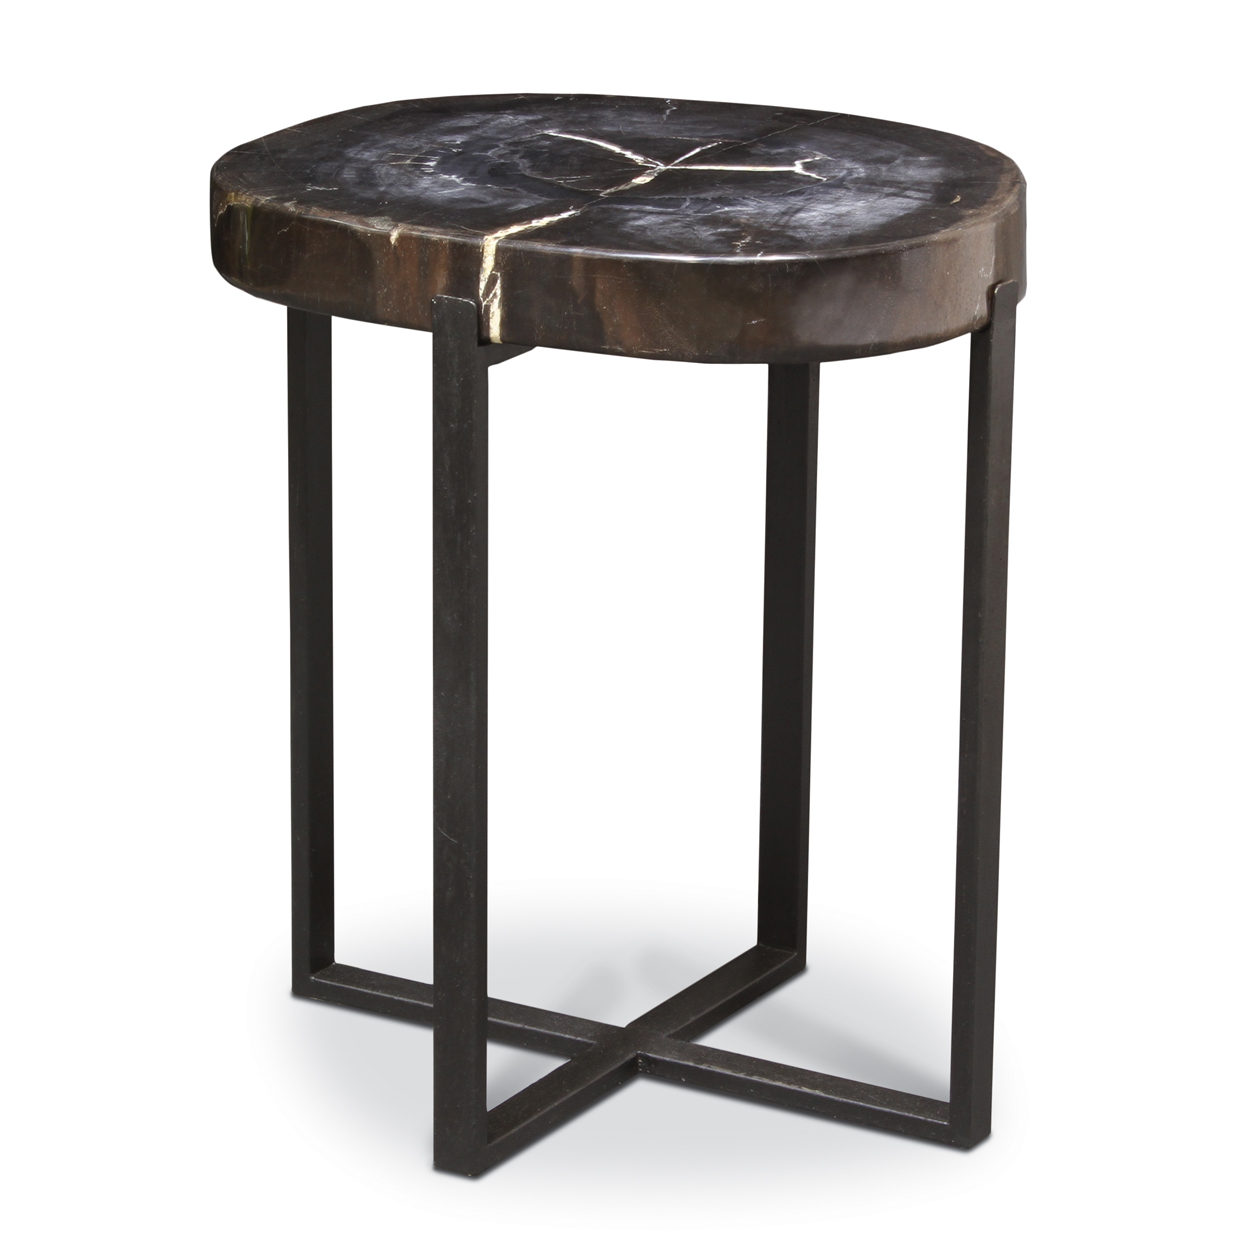 Captivating Black Petrified Wood Accent Table, Large Good Ideas